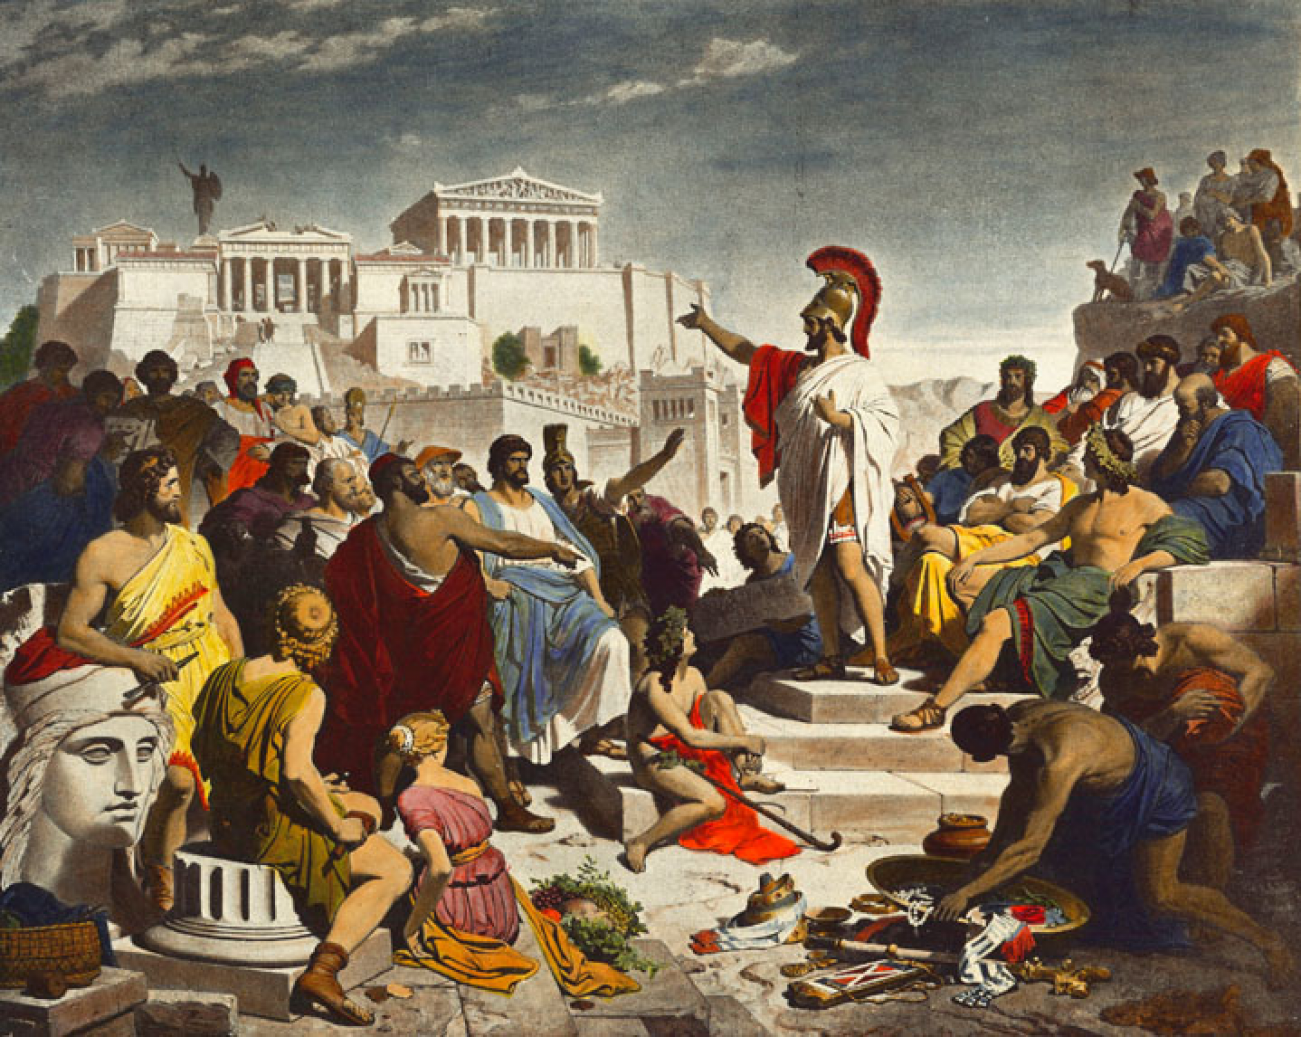 Does Ancient Greece Have The Answer To the Middle East's Problems?